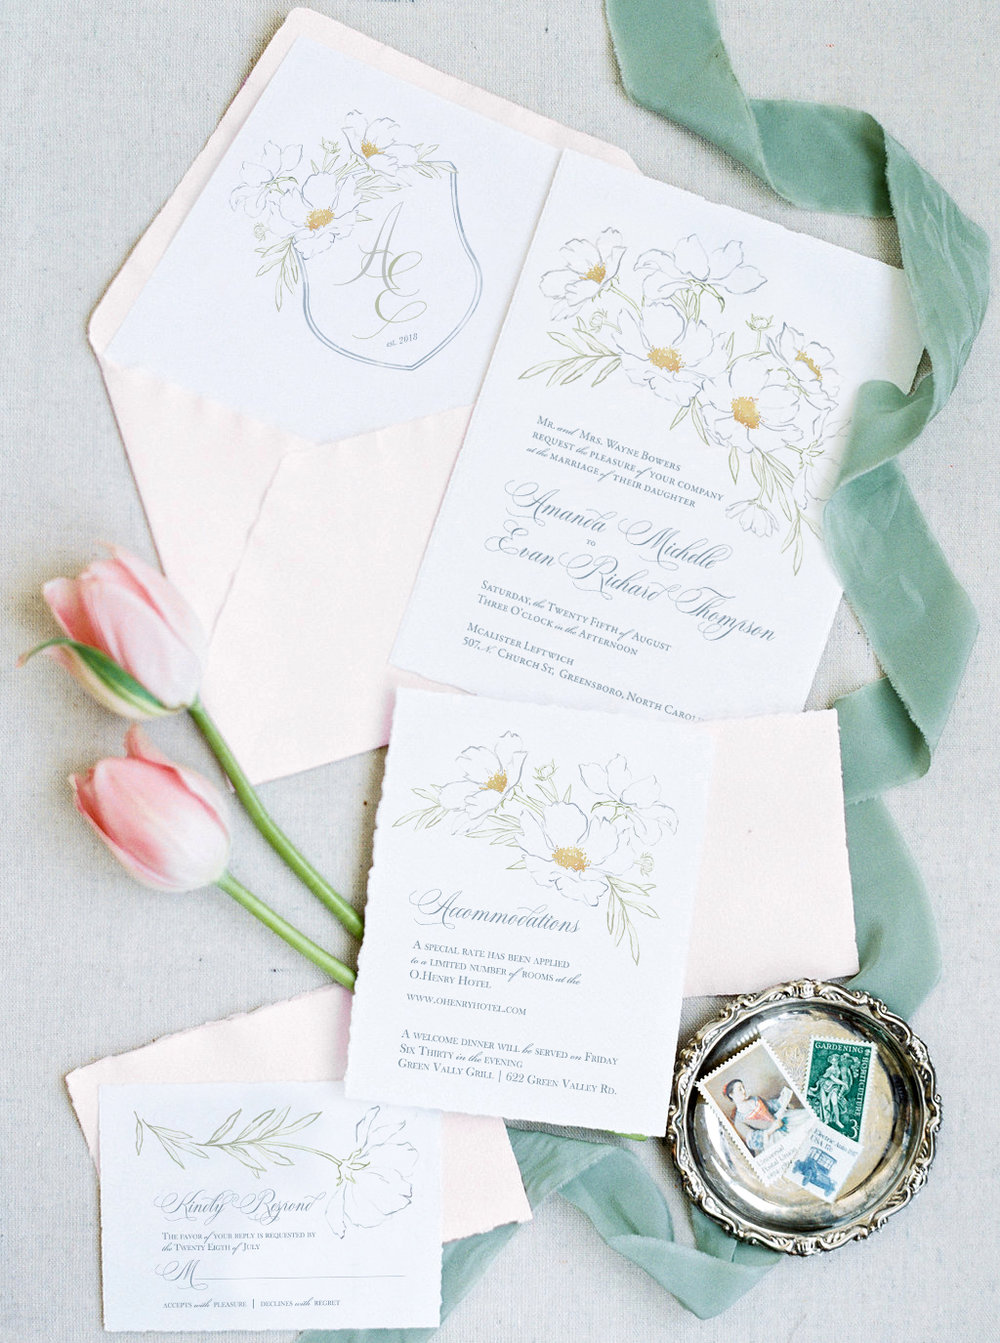 Fine art wedding invitations inspired by the McAlister Leftwich house, featuring a modern style text layout and wild peony blossoms.  A watercolor crest is featured on the envelope liner and vintage stamps complete the look! Created by Blushed Design #fineartwedding #fineartweddinginspiration #mcalisterleftwich #watercolorcrest